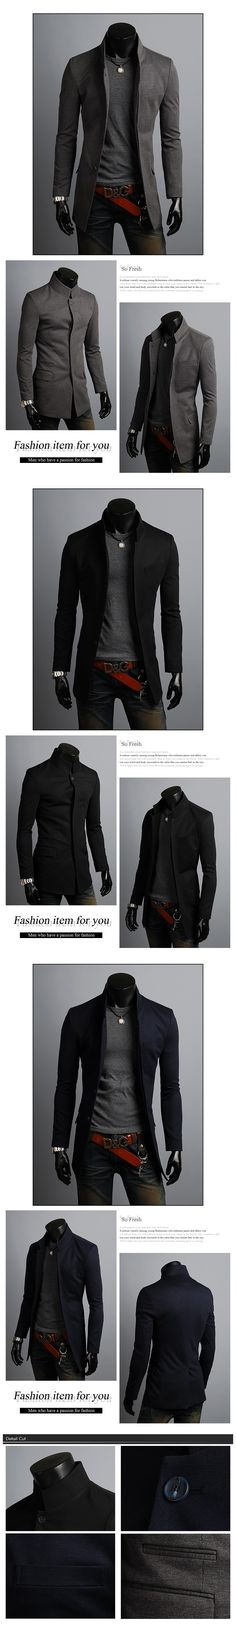 KOREAN Mens Slim Fit Premium Button Jacket China Collar Long Blazer  HD6-XS S. Manteau Homme ... 1c530138b0e2